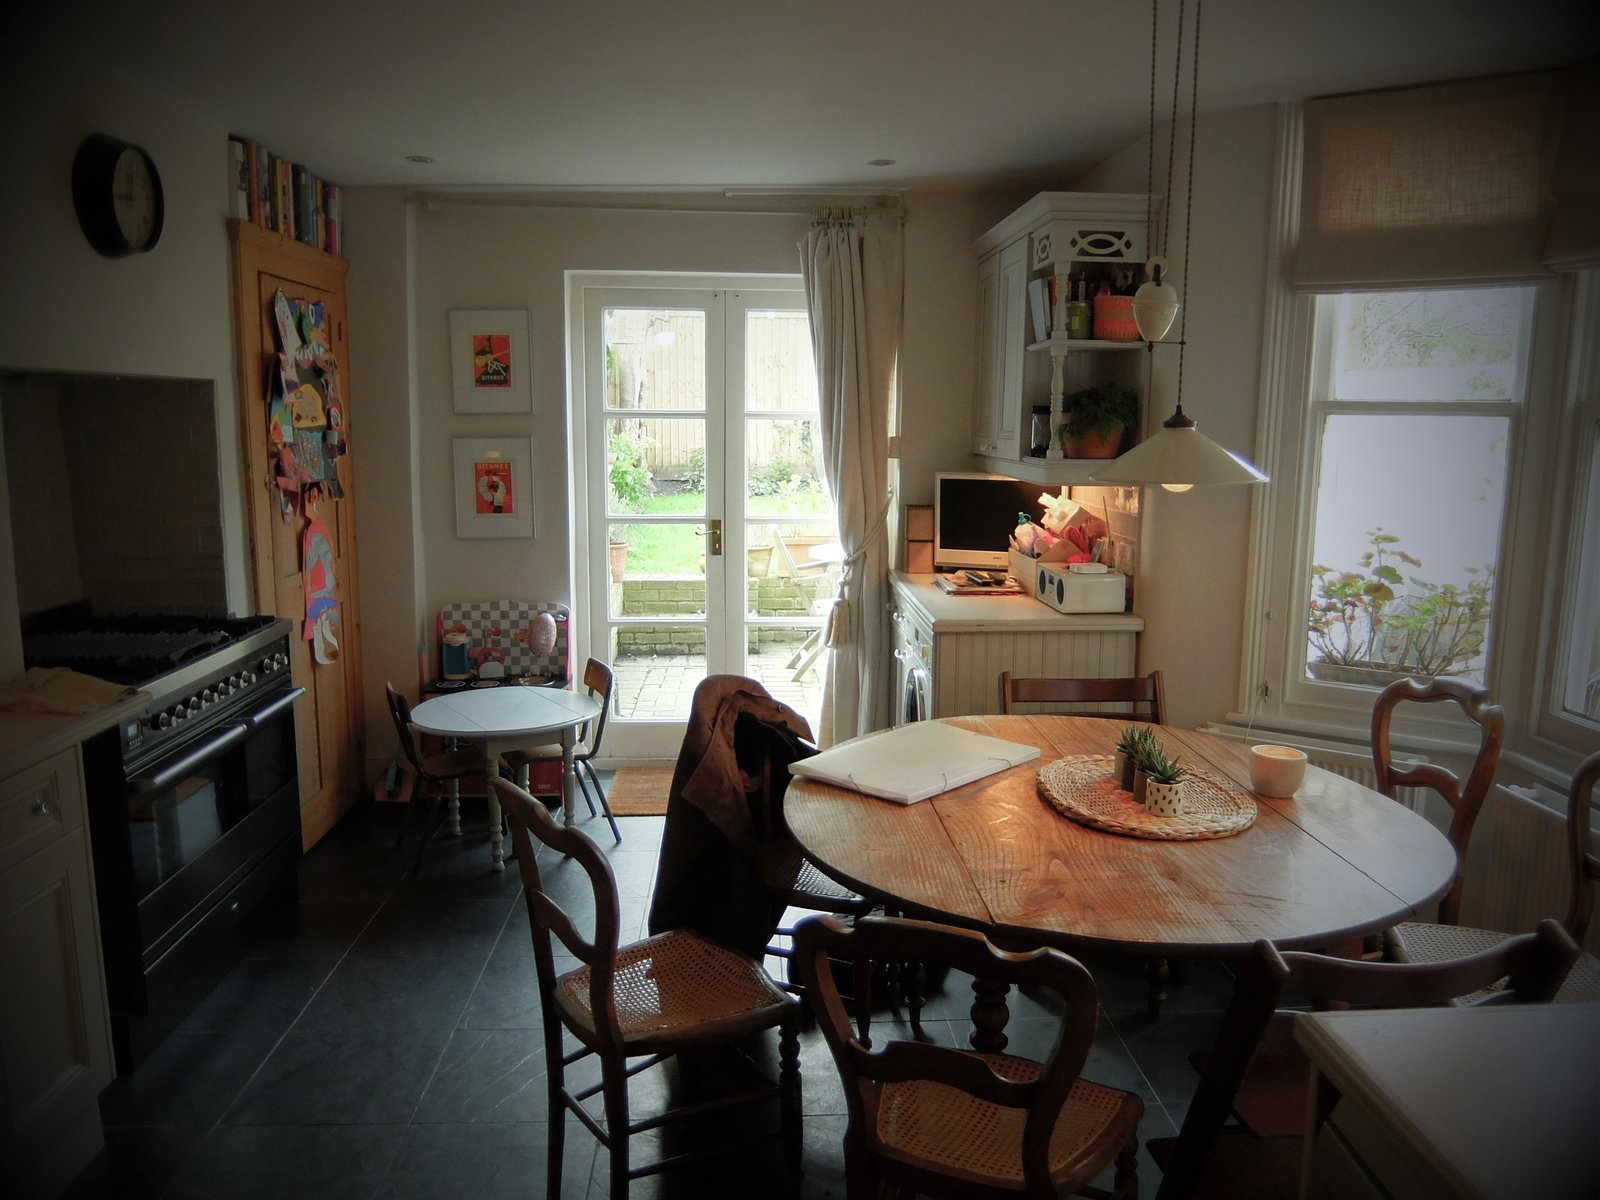 Before & After: A London Home Doubles as a Cheery Work Space